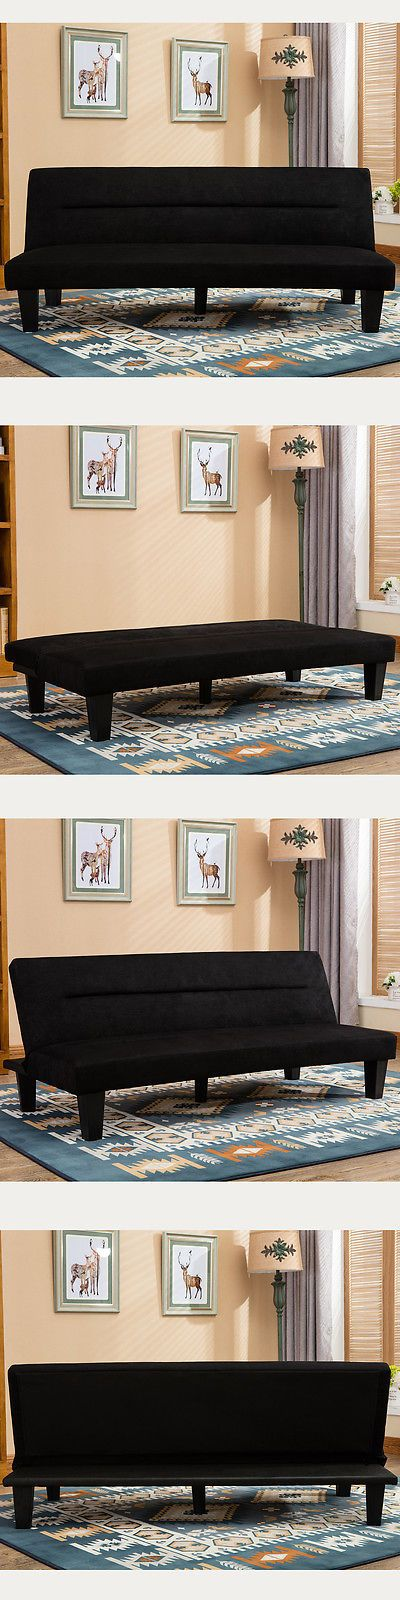 Futons Frames and Covers 131579: Futon Sofa Bed Couch Lounger Sleeper Foldable Folding Microfiber Upholstery New -> BUY IT NOW ONLY: $79.99 on eBay!